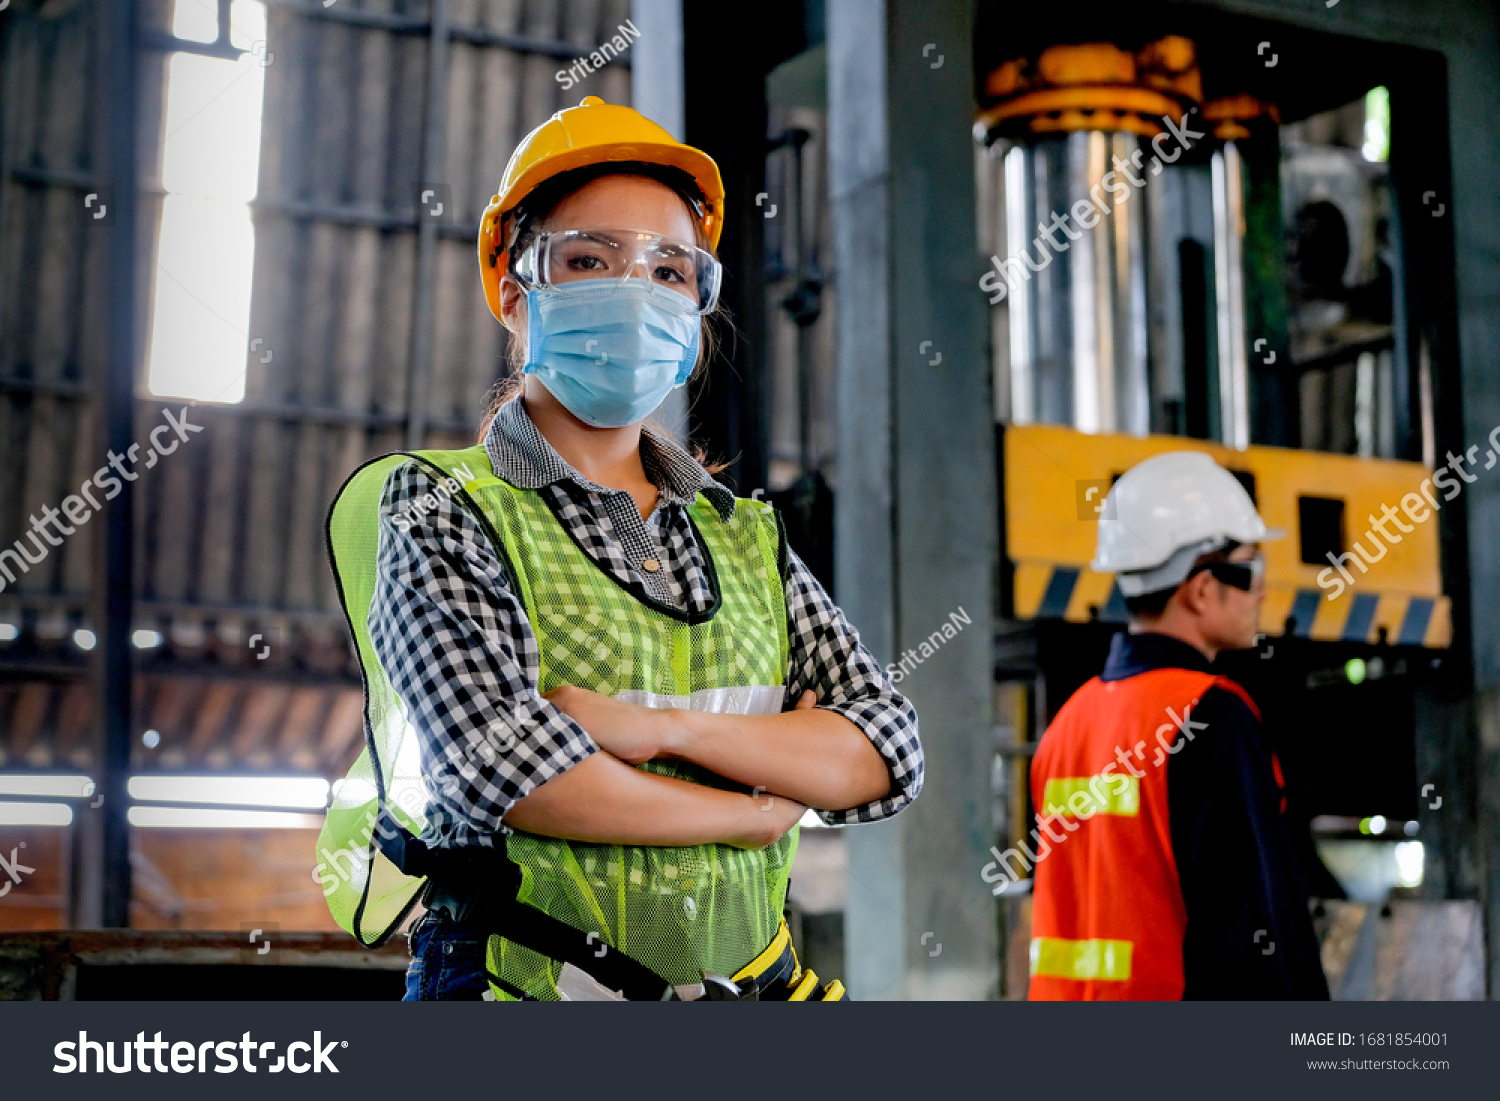 Factory woman worker or technician with hygienic mask stand with confident action with her co-worker engineer in workplace during concern about covid pandemic in people affect industrial business. #1681854001